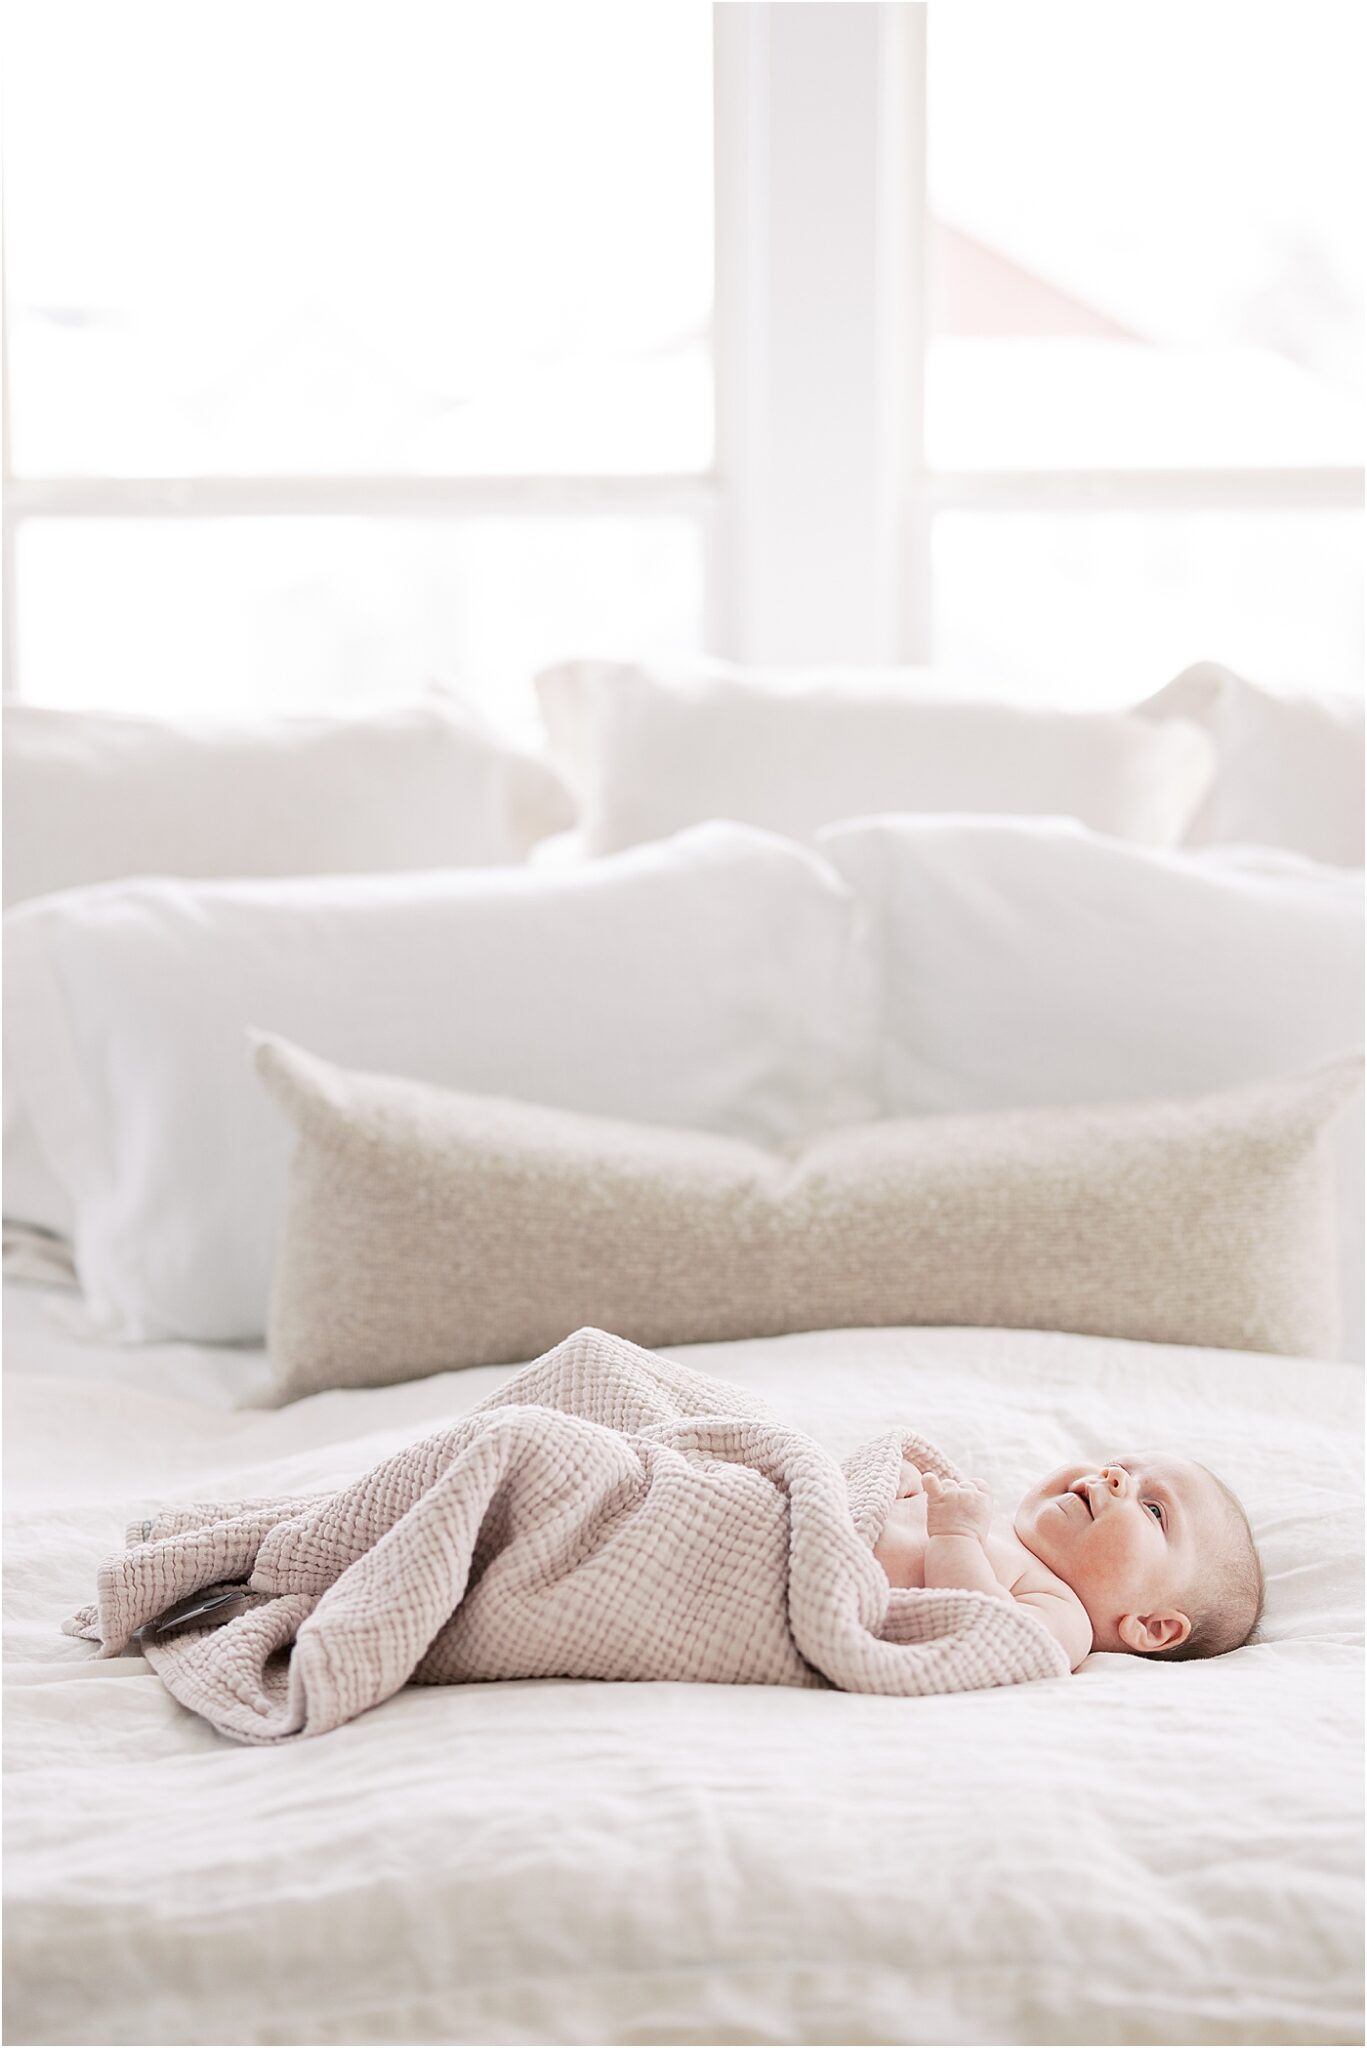 Baby girl laying on bed for lifestyle newborn session with Indianapolis Lifestyle Newborn Photographer, Lindsay Konopa Photography.